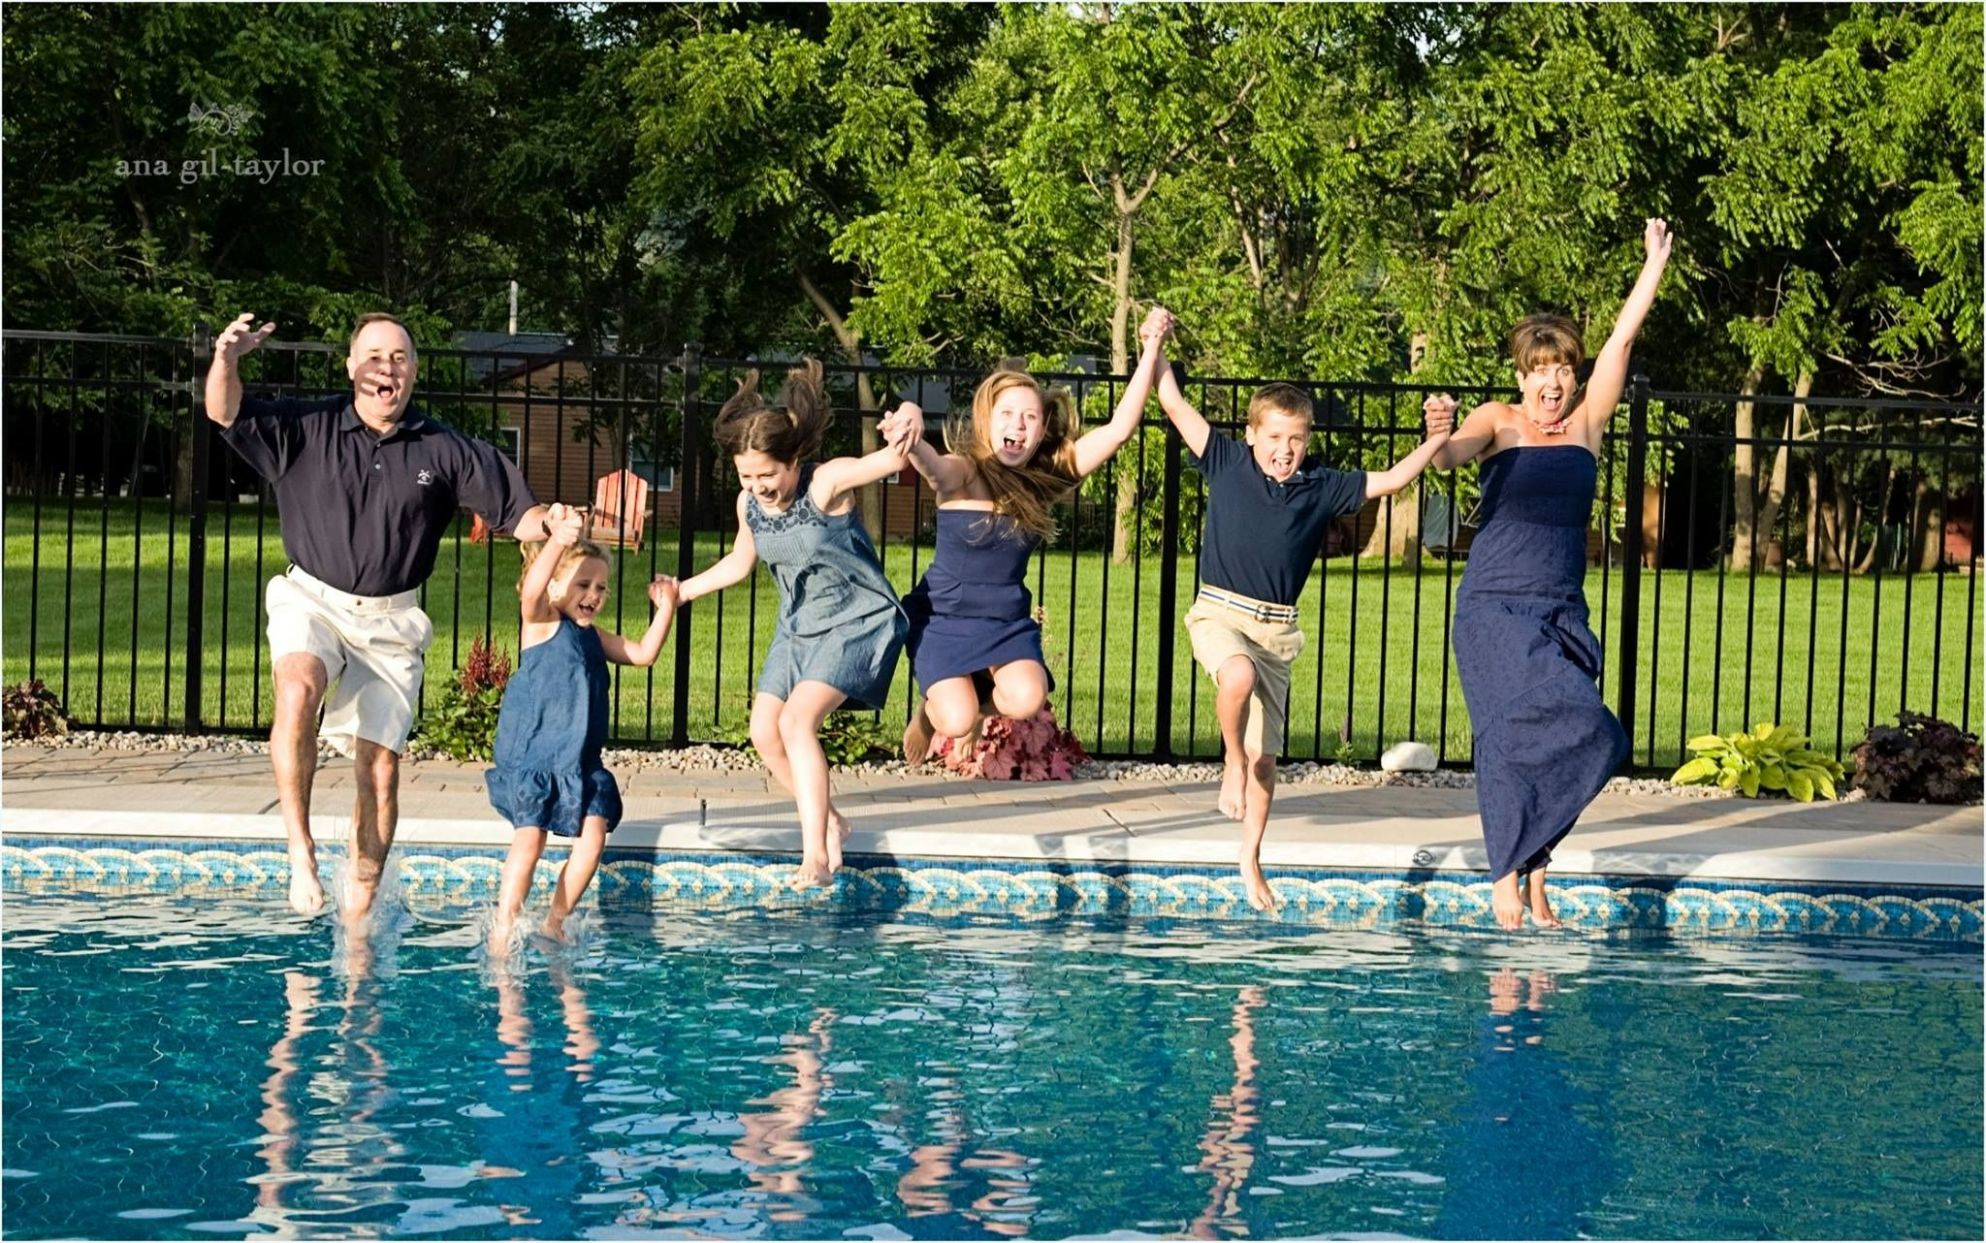 ana gil photography | Adult family pictures, Fun family portraits ...